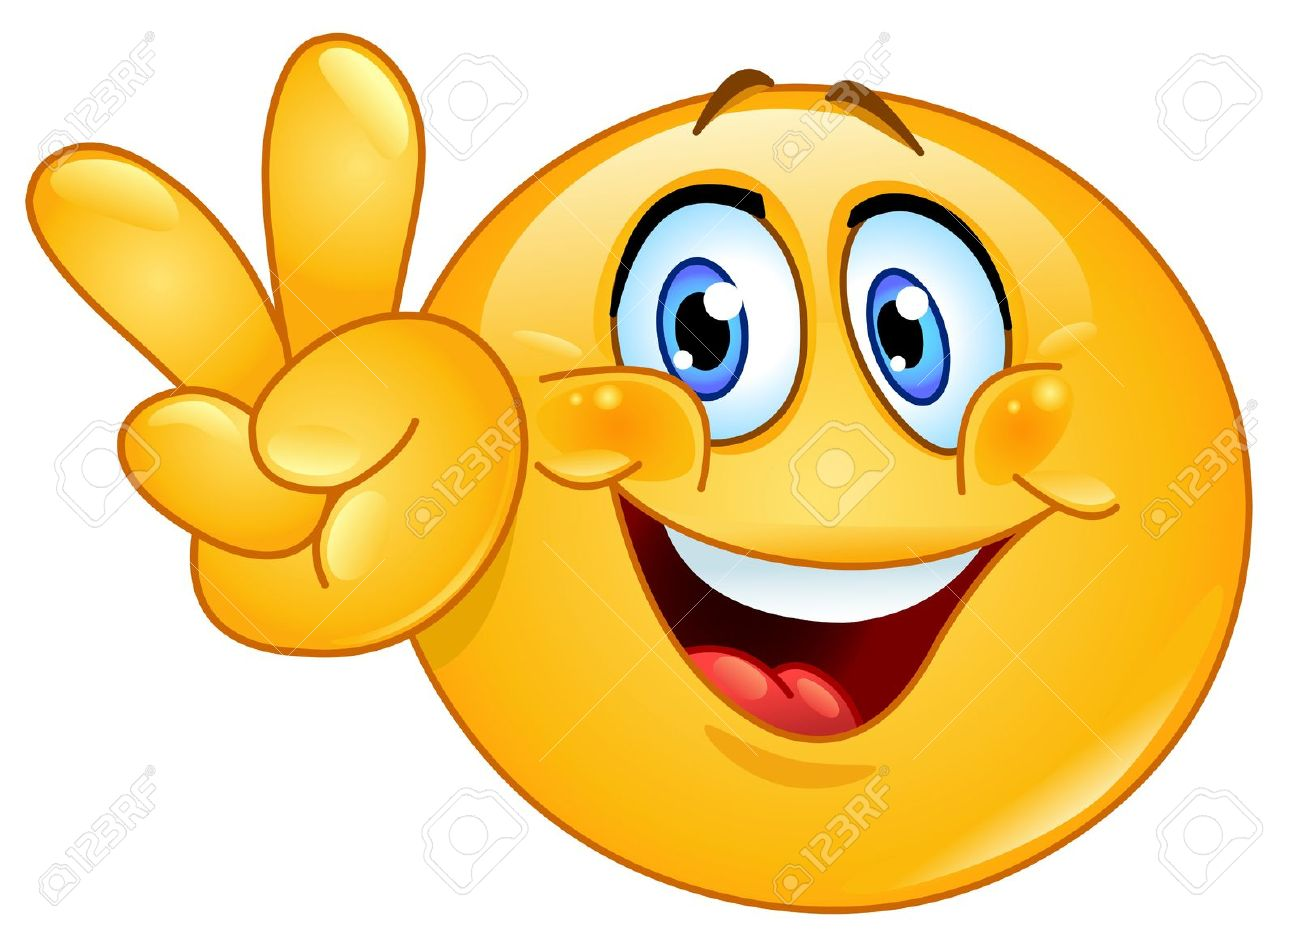 Smileys clipart success Face Free Stock Smiley